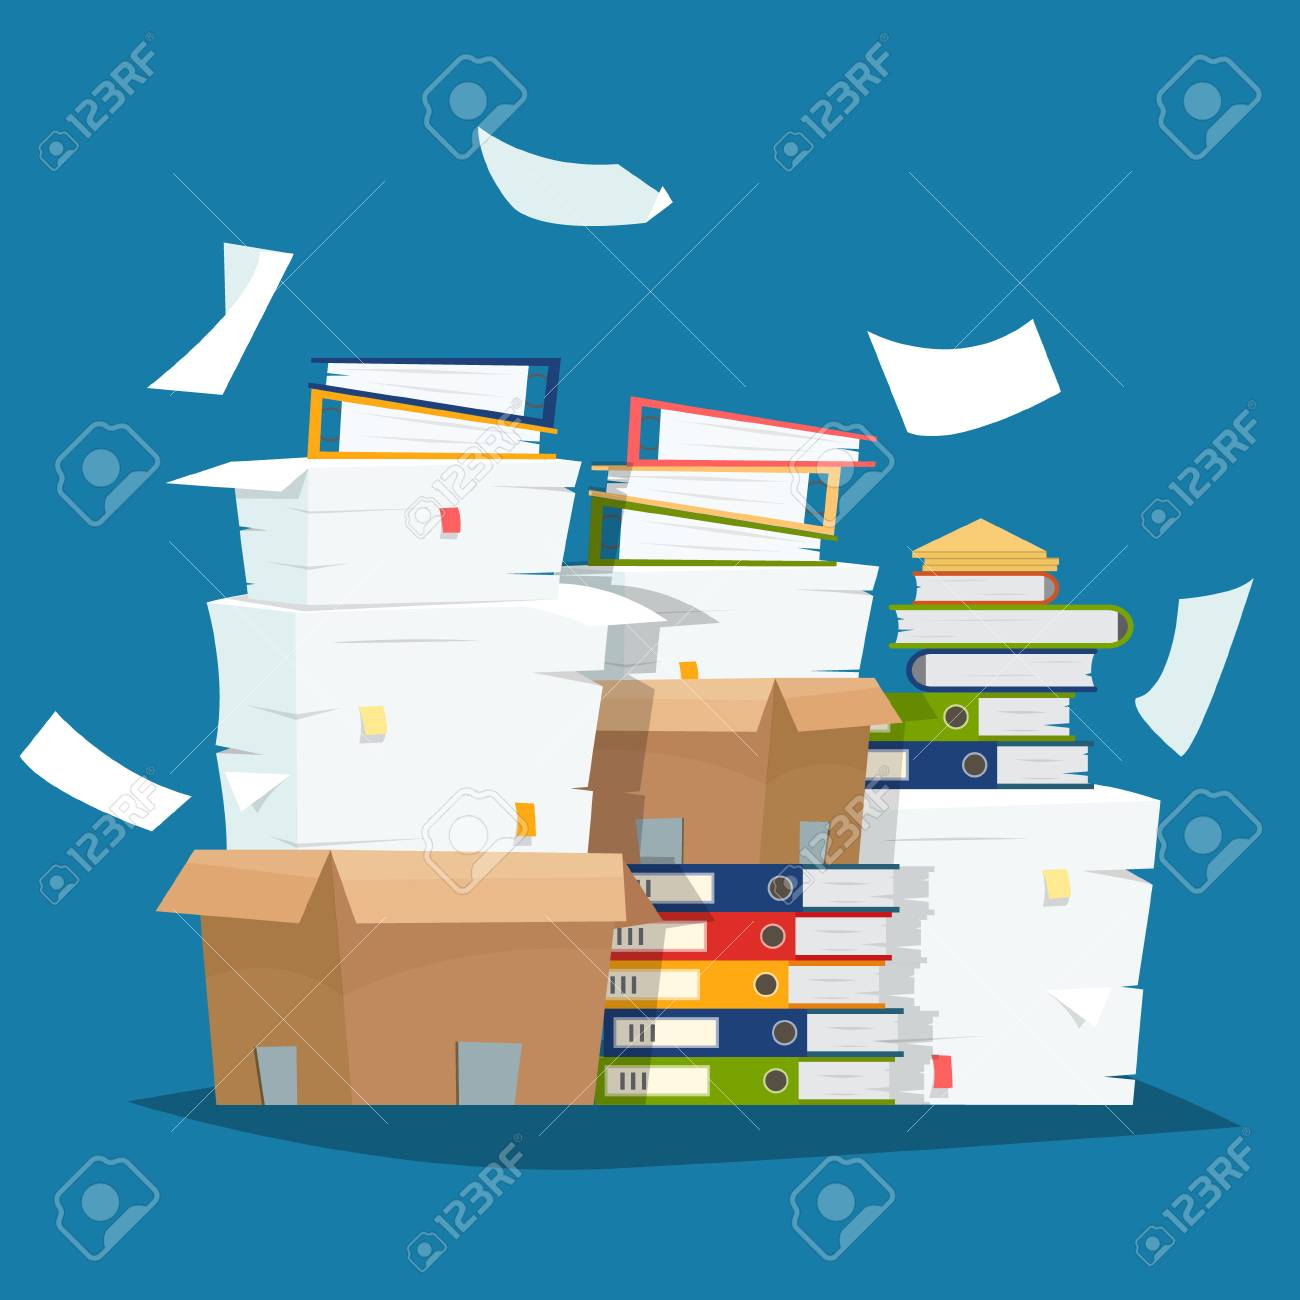 Pile of paper documents and file folders in carton boxes vector illustration - 97938565